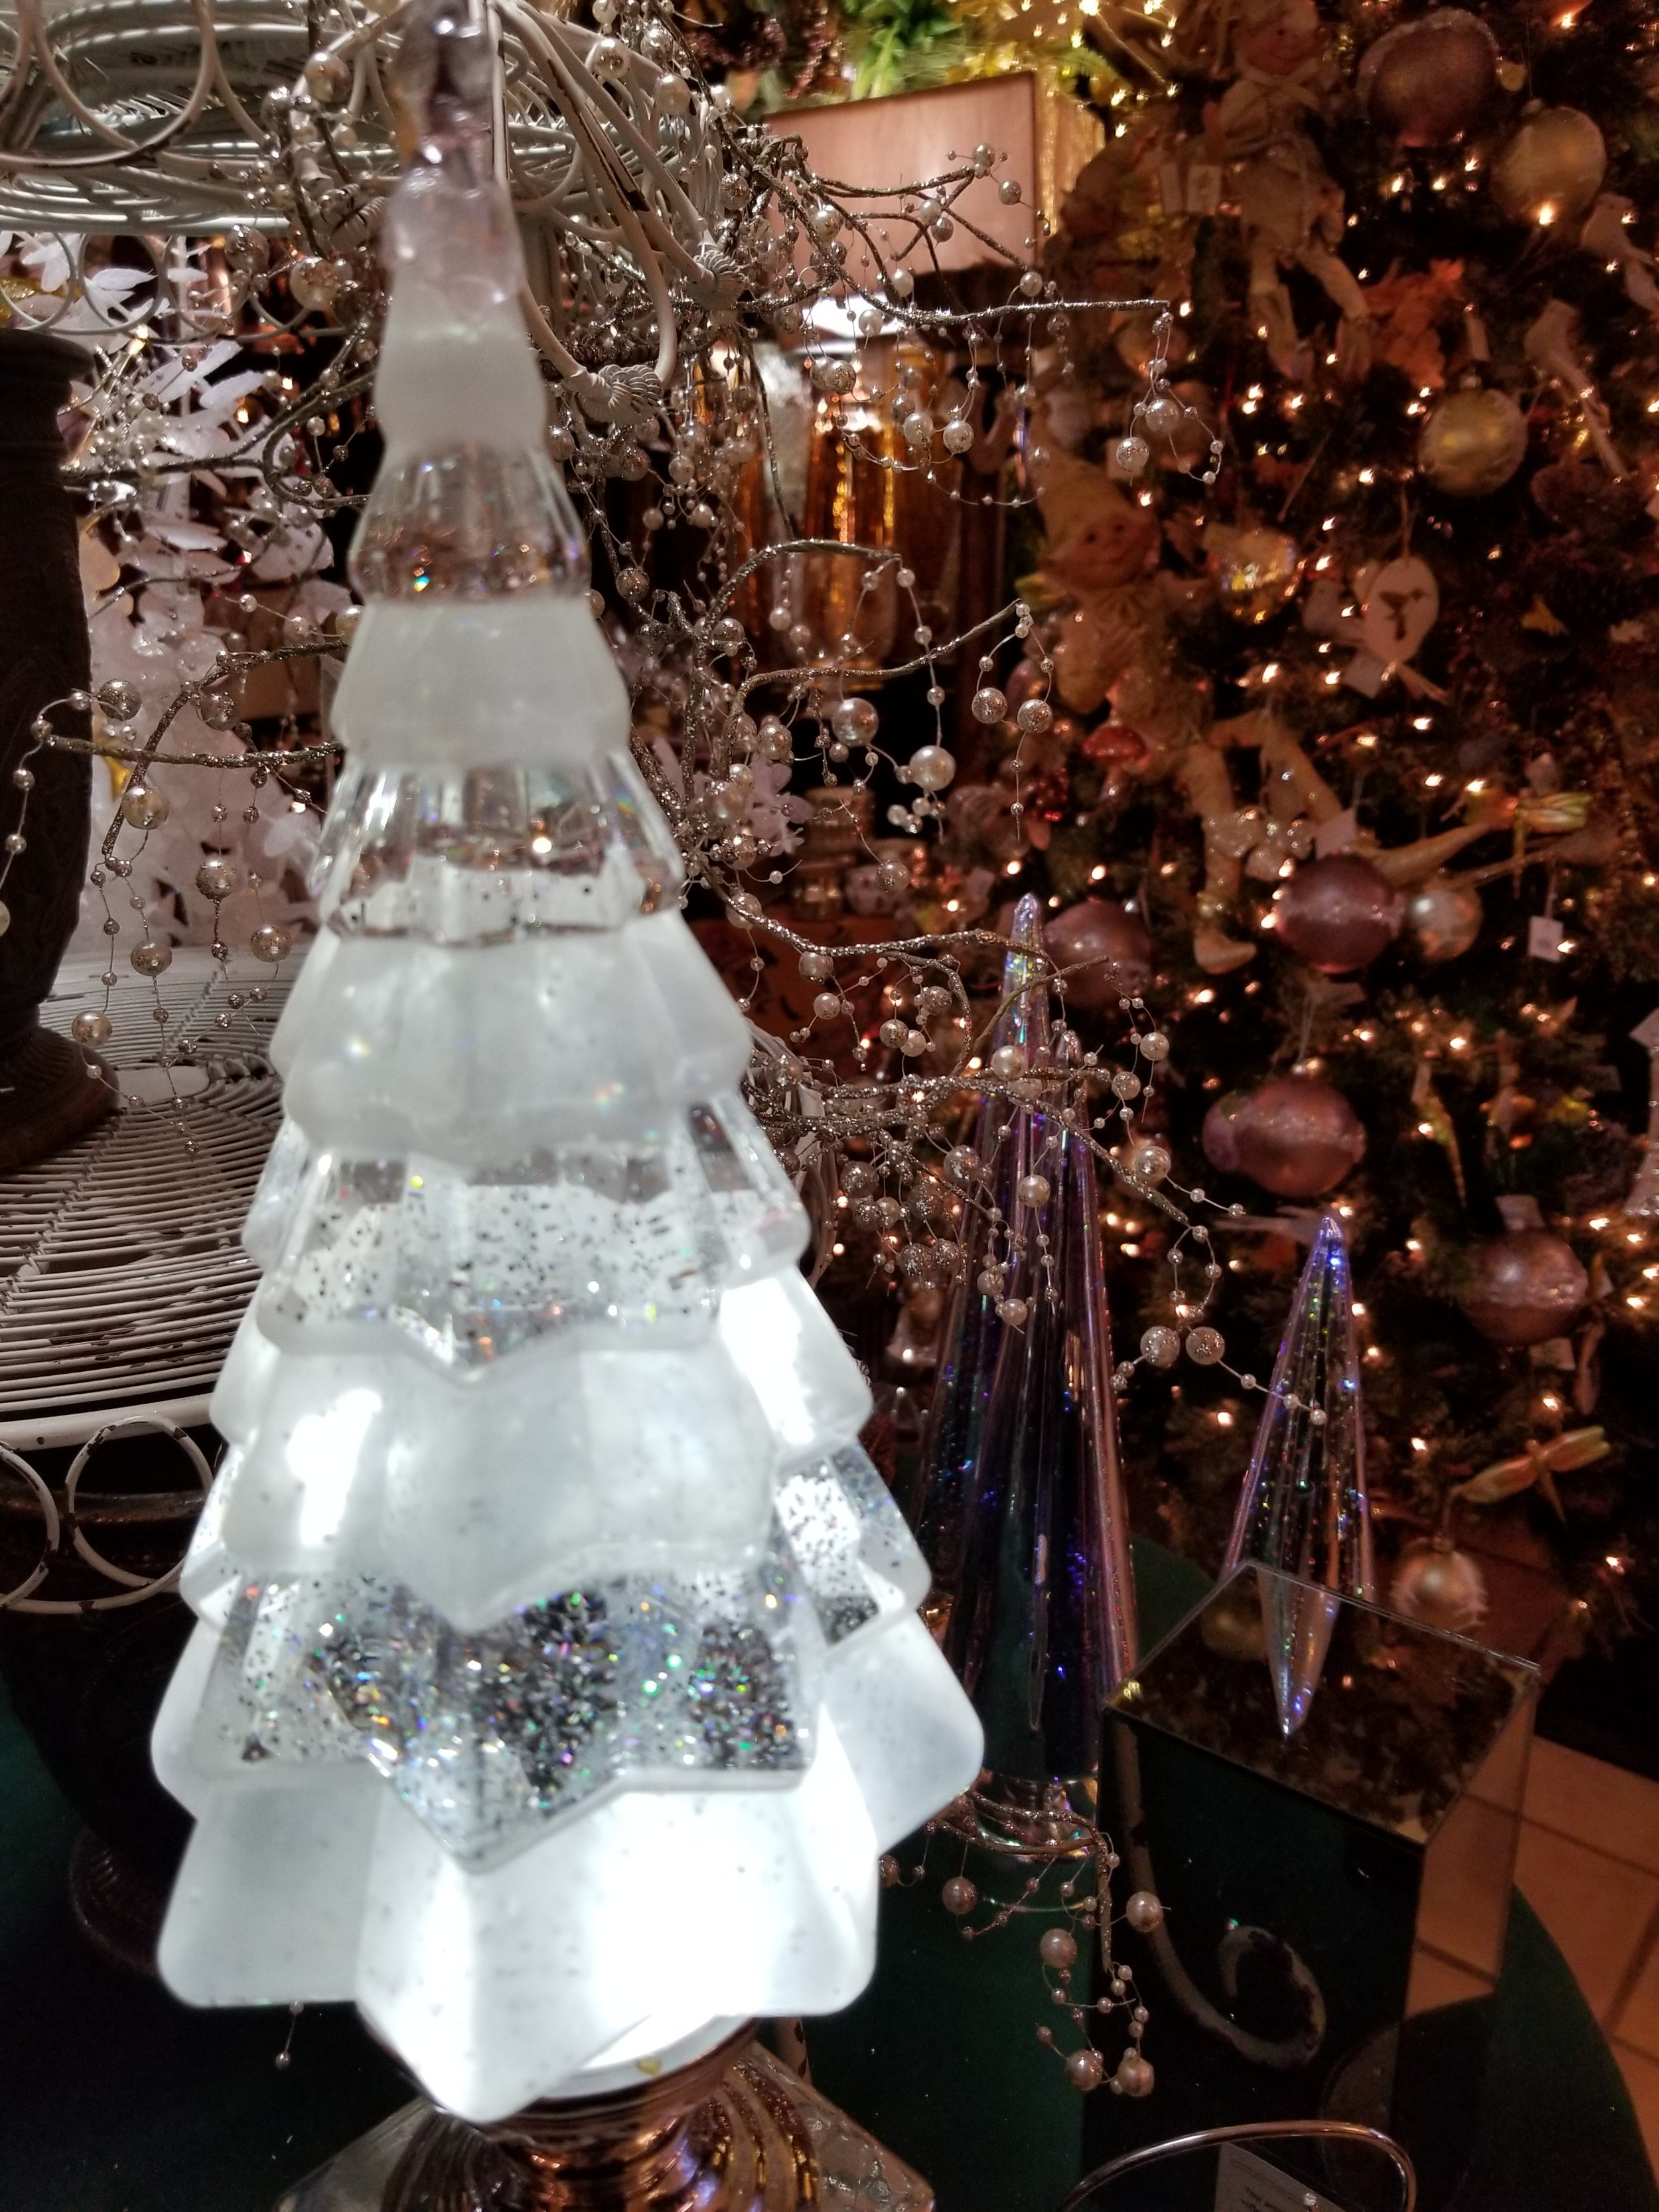 Photo by Laura Warfel (Display at Etcetera Gifts, Marion, Illinois)